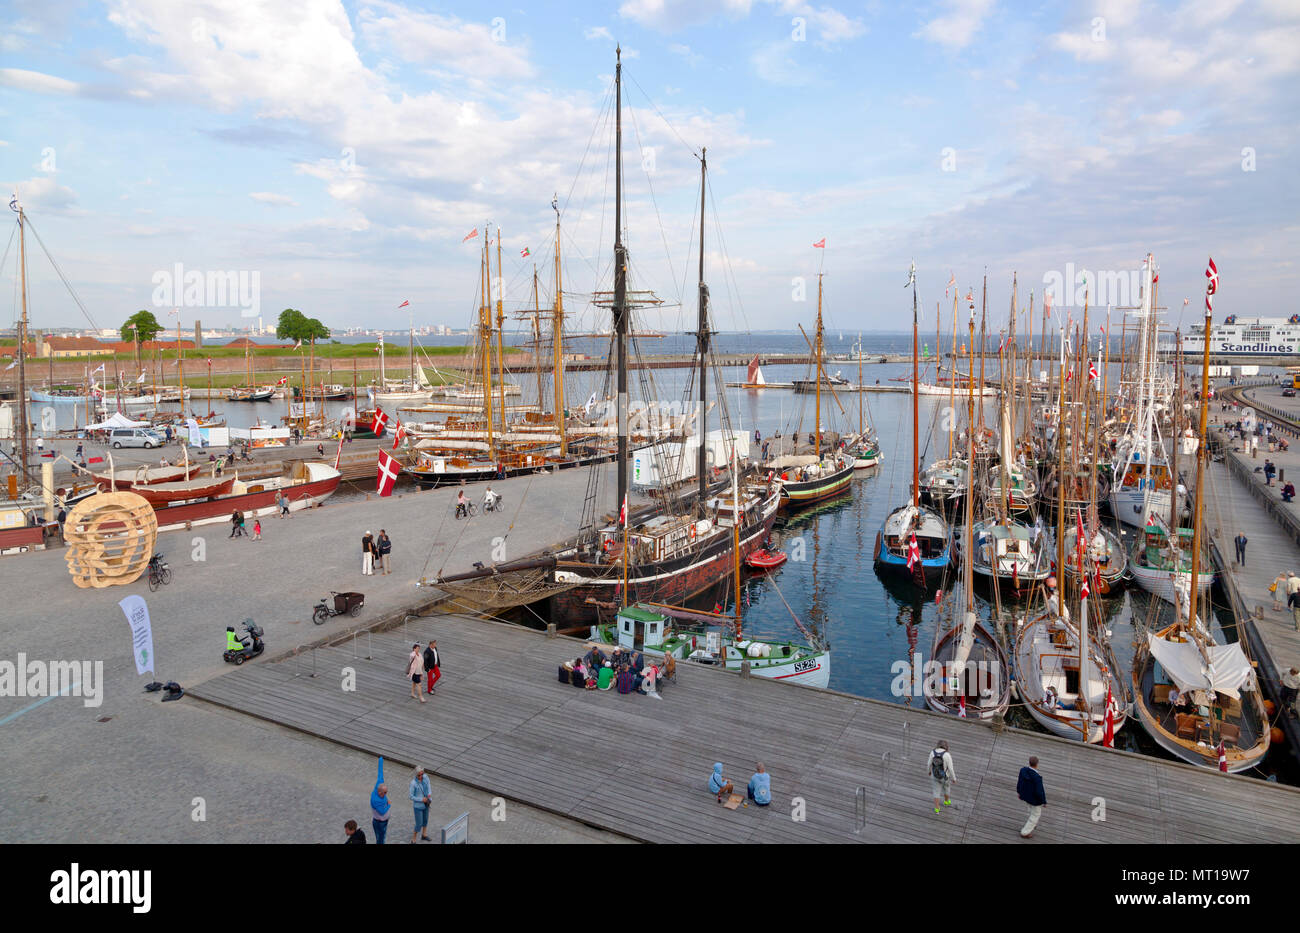 Historical days of more than 100 wooden ships in Elsinore at Pentecost / Whitsun in Helsingør, Elsinore, Denmark. Next to Maritime Museum and Kronborg - Stock Image